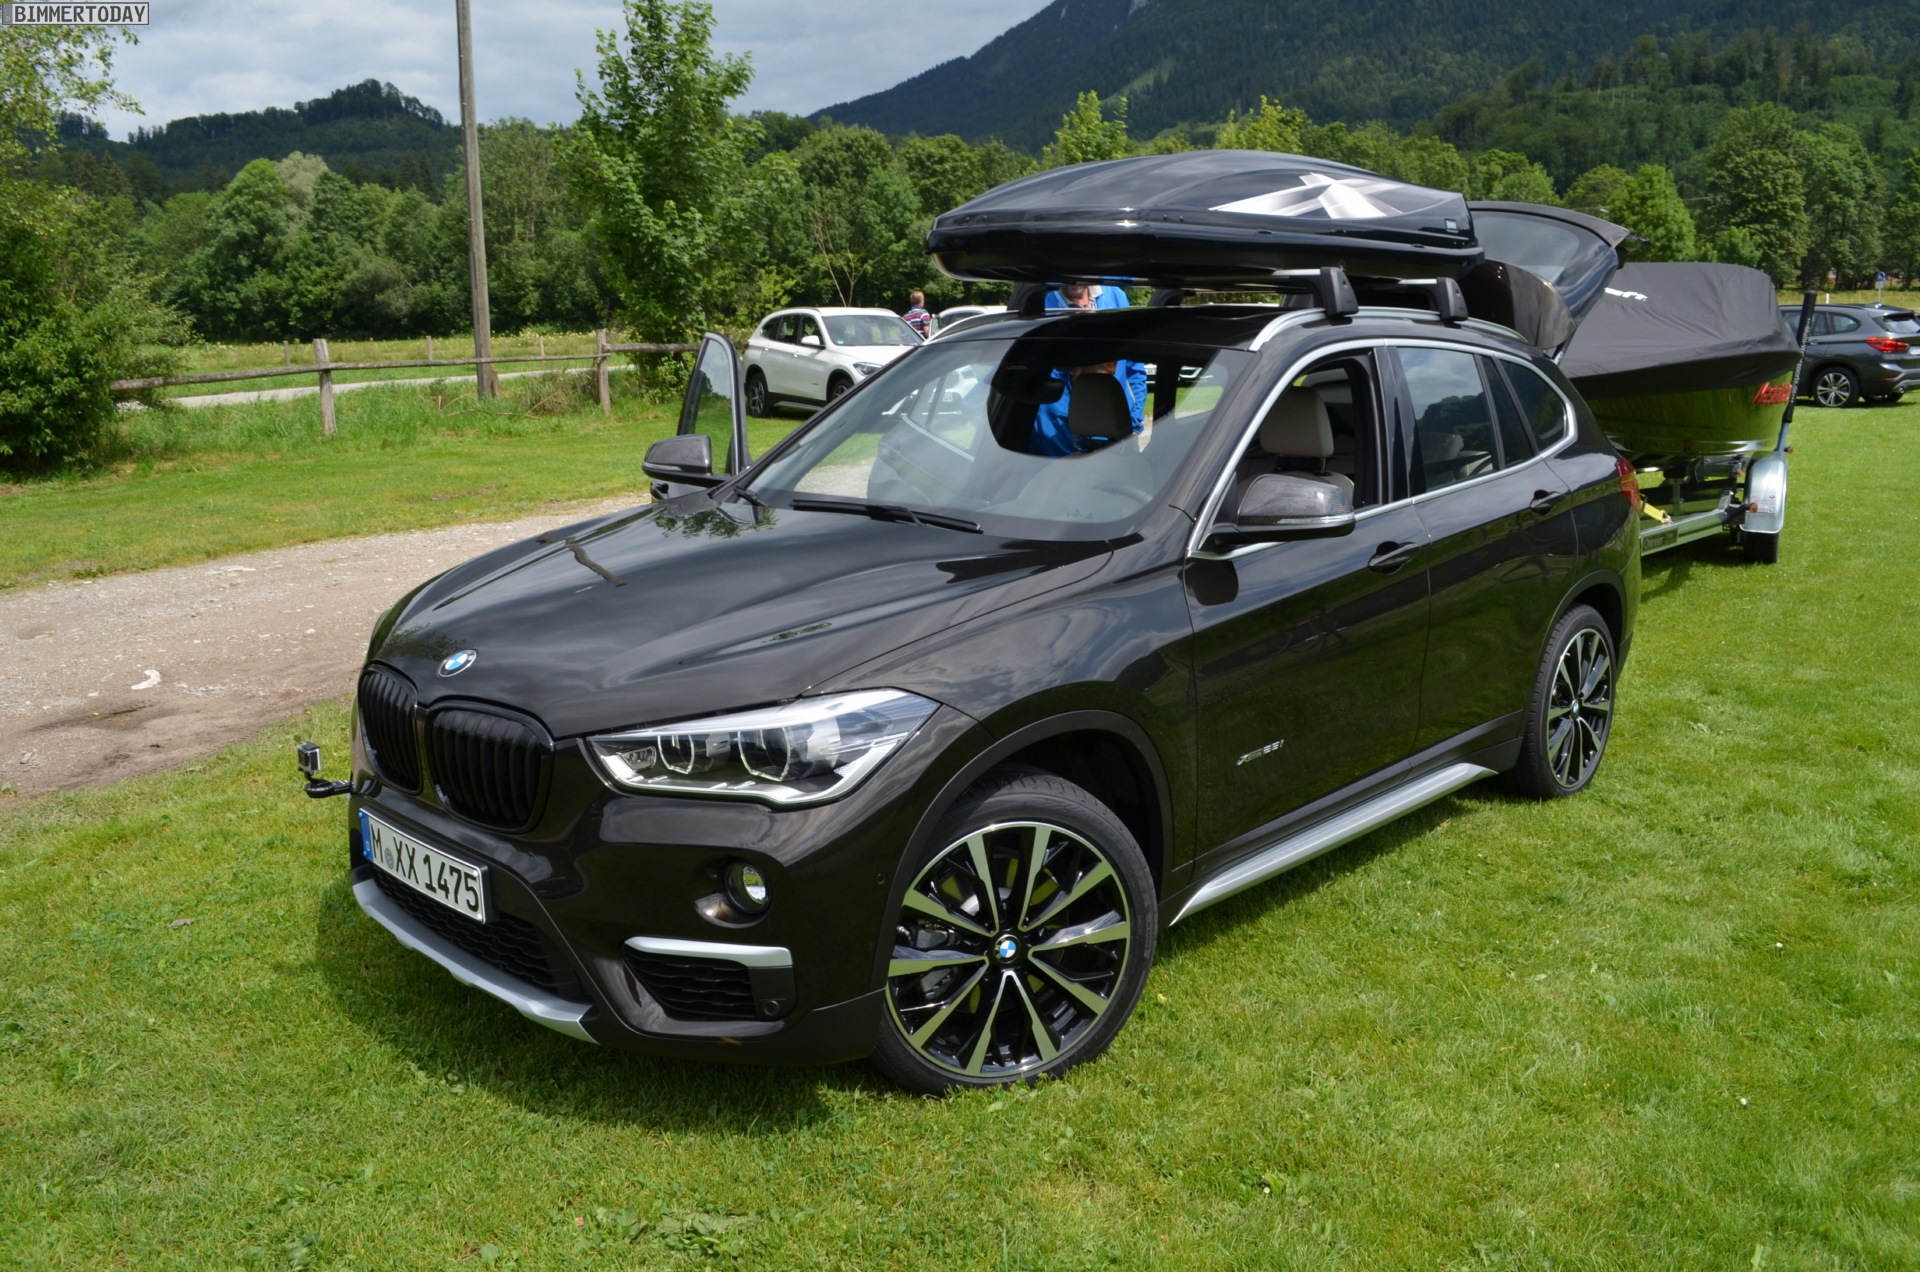 New Bmw X1 Can Tow A 2 000 Kg Boat